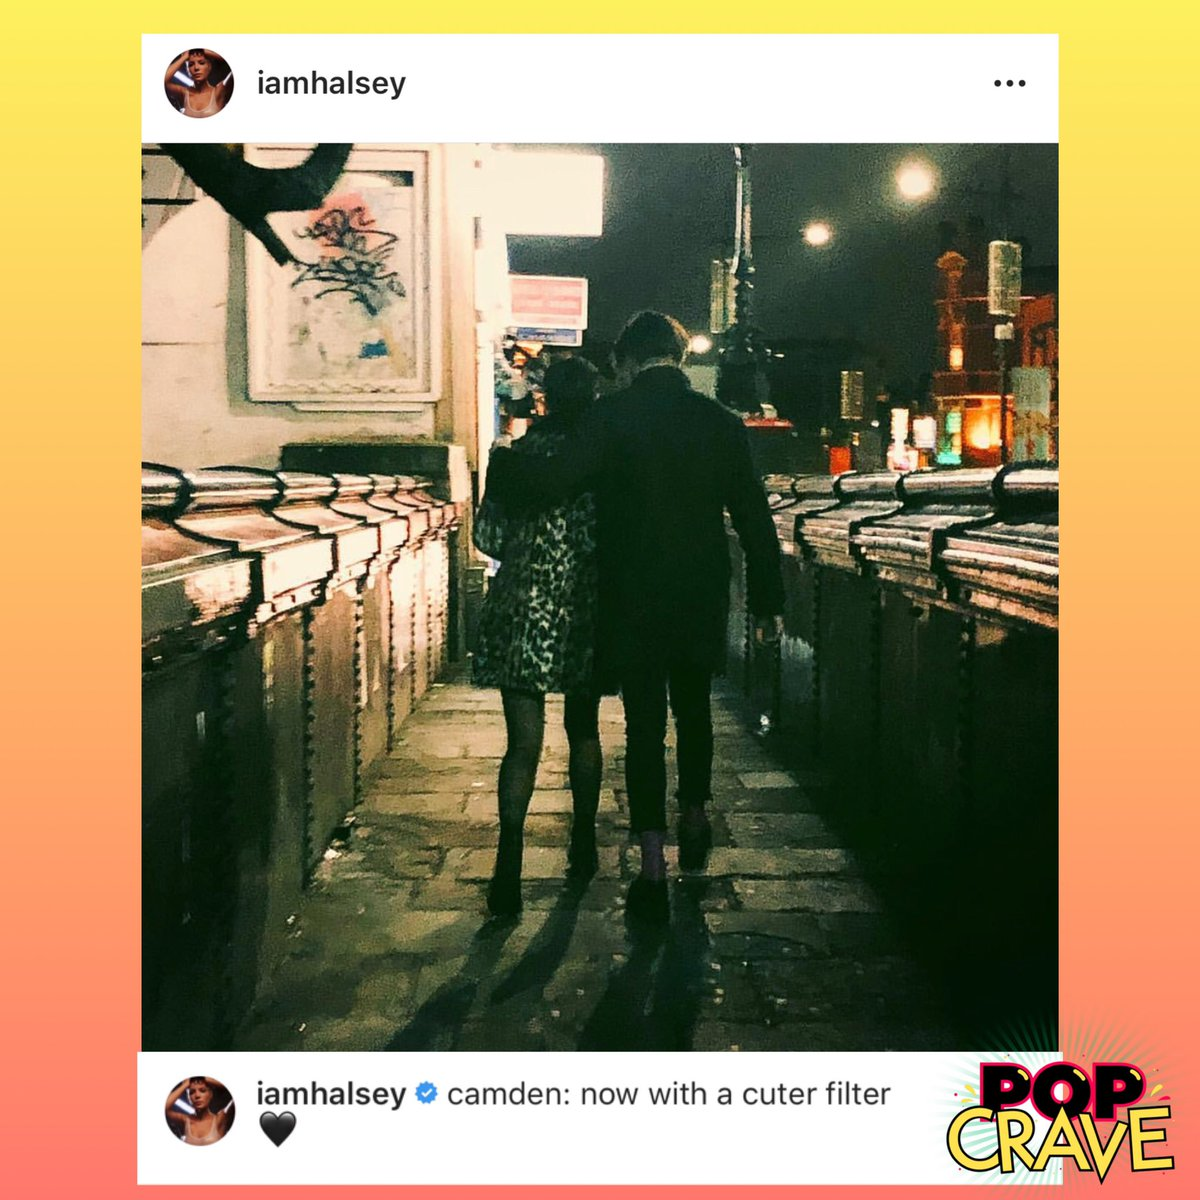 halsey and yungblud split